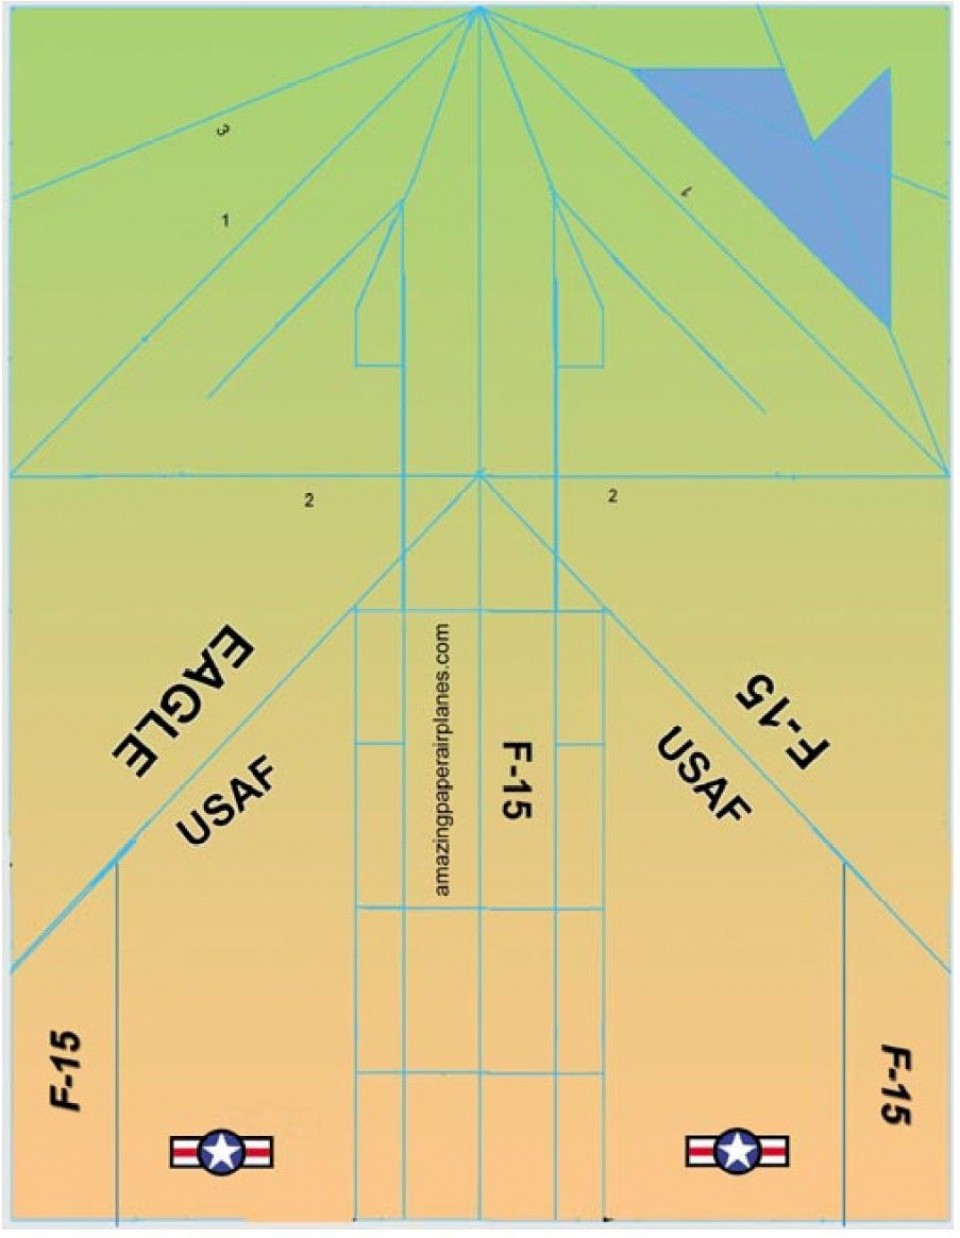 000 Magnificent Printable Paper Airplane Pattern Highest Quality  Free Plane Design Designs-printable Template960